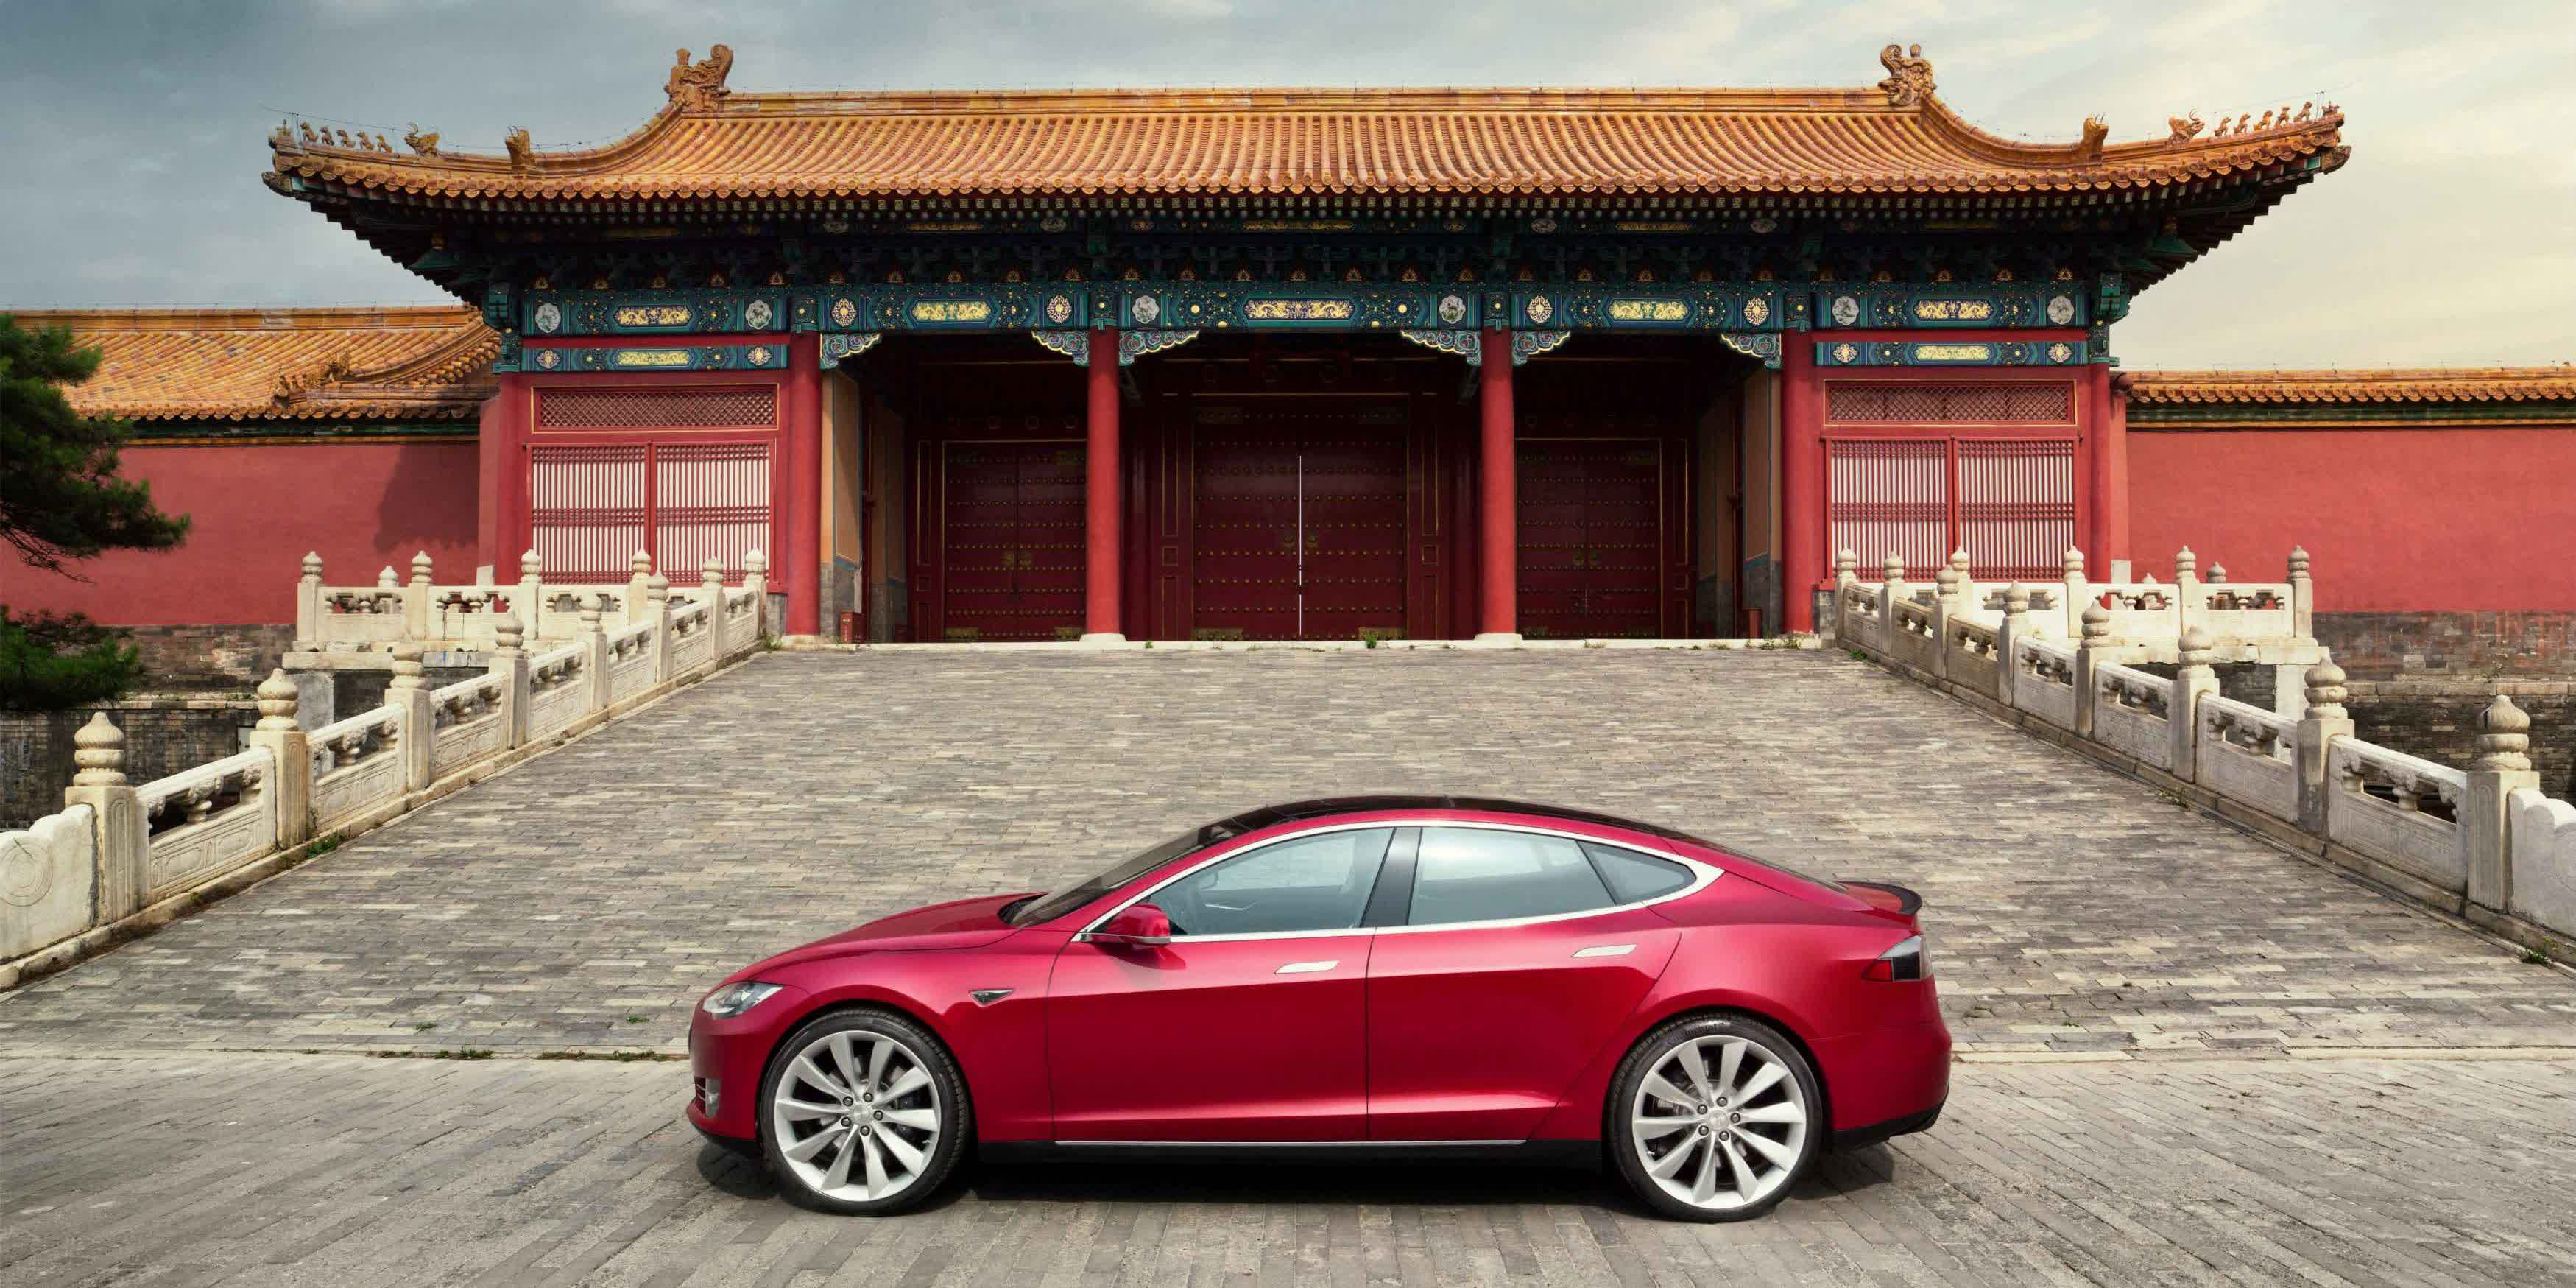 China suspects Tesla vehicles of spying, restricts use by military and state employees